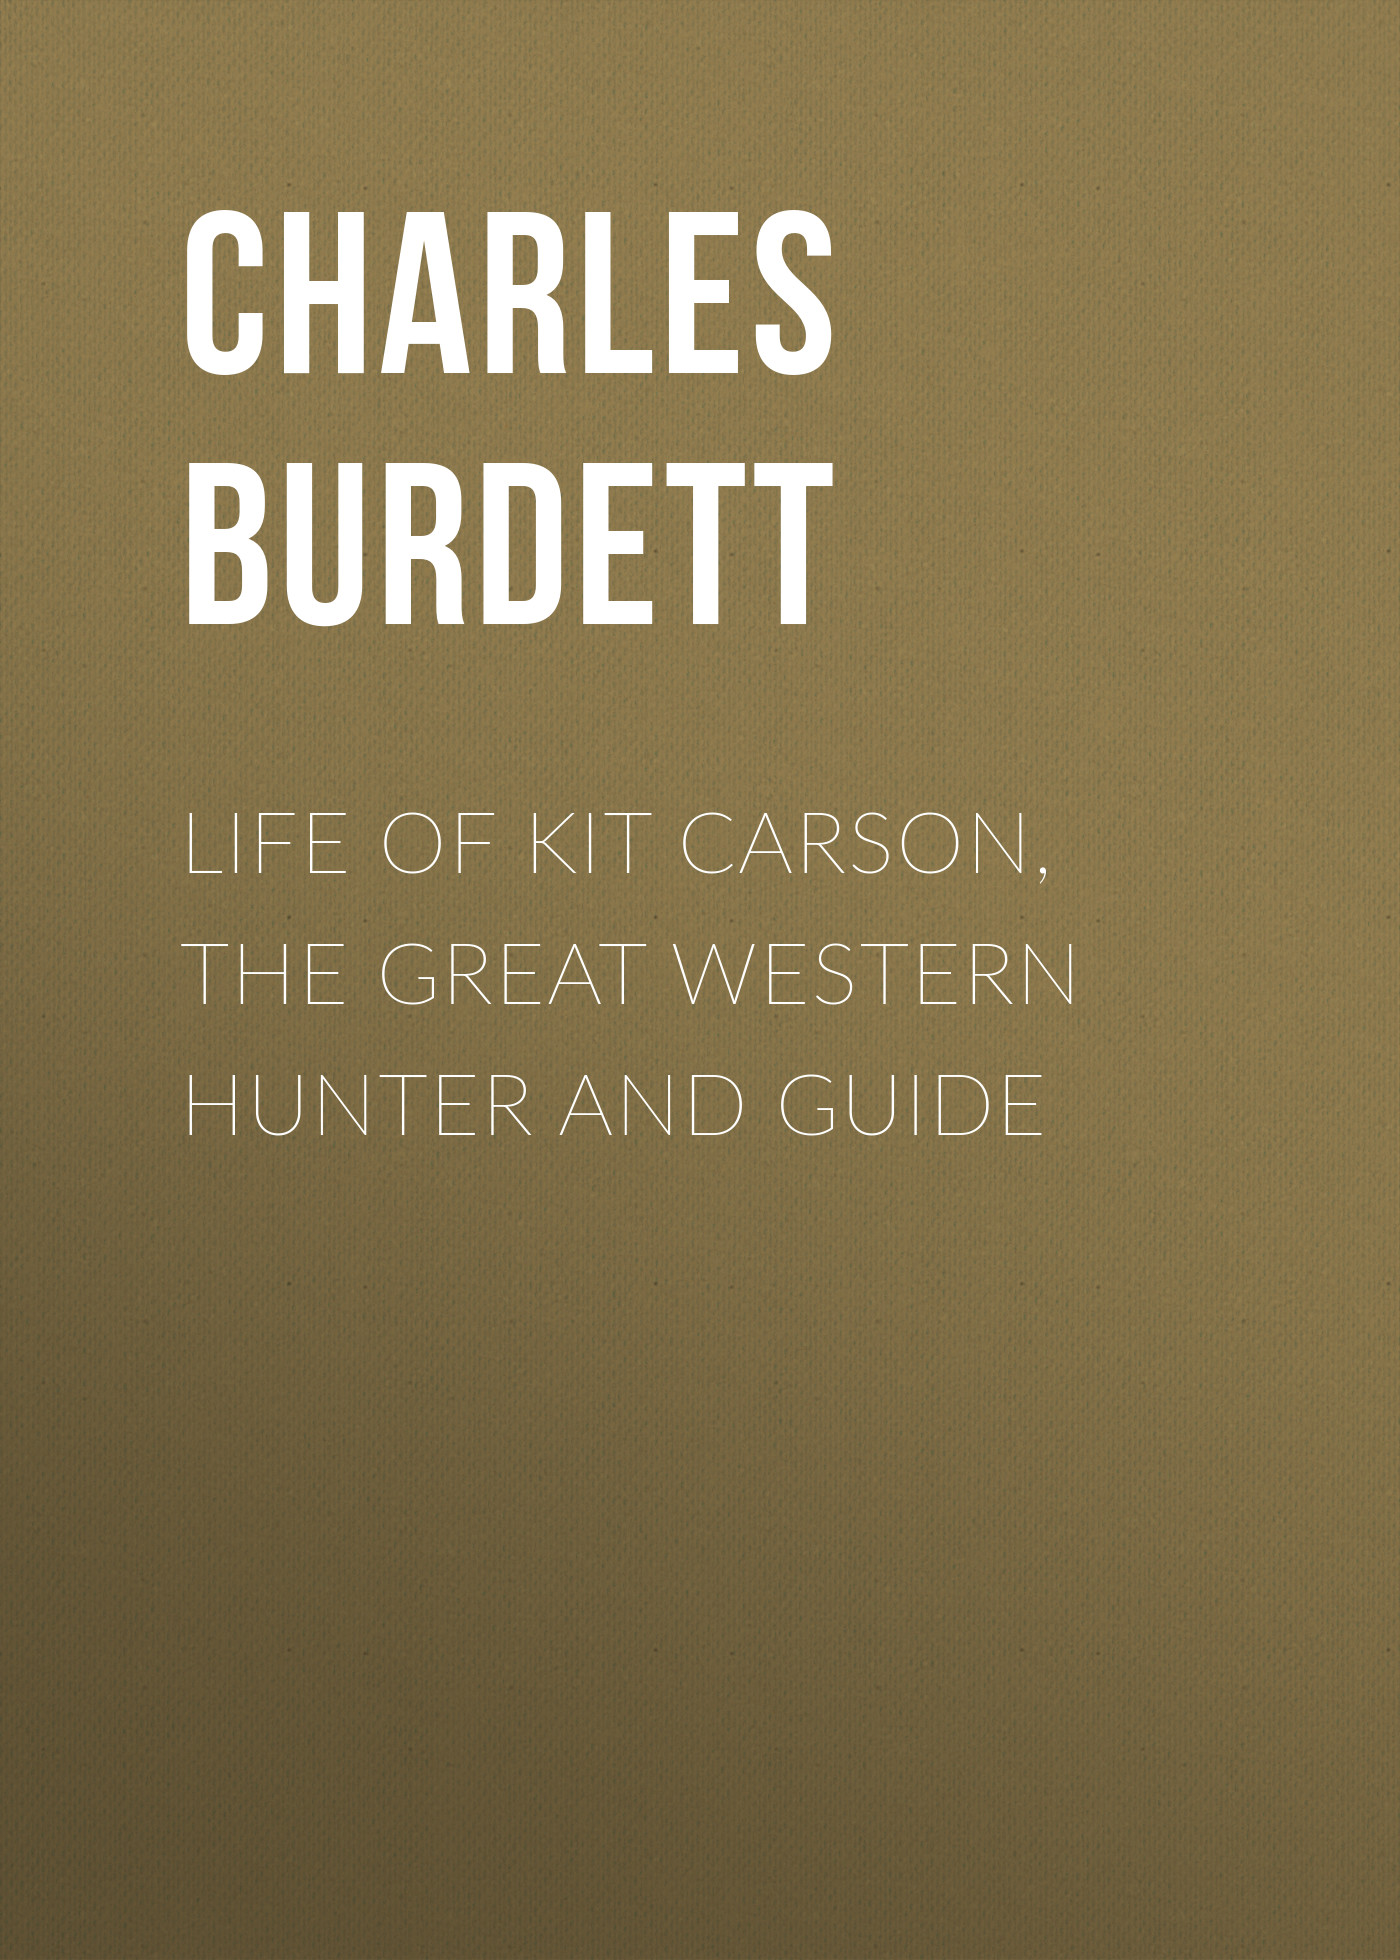 life of kit carson the great western hunter and guide